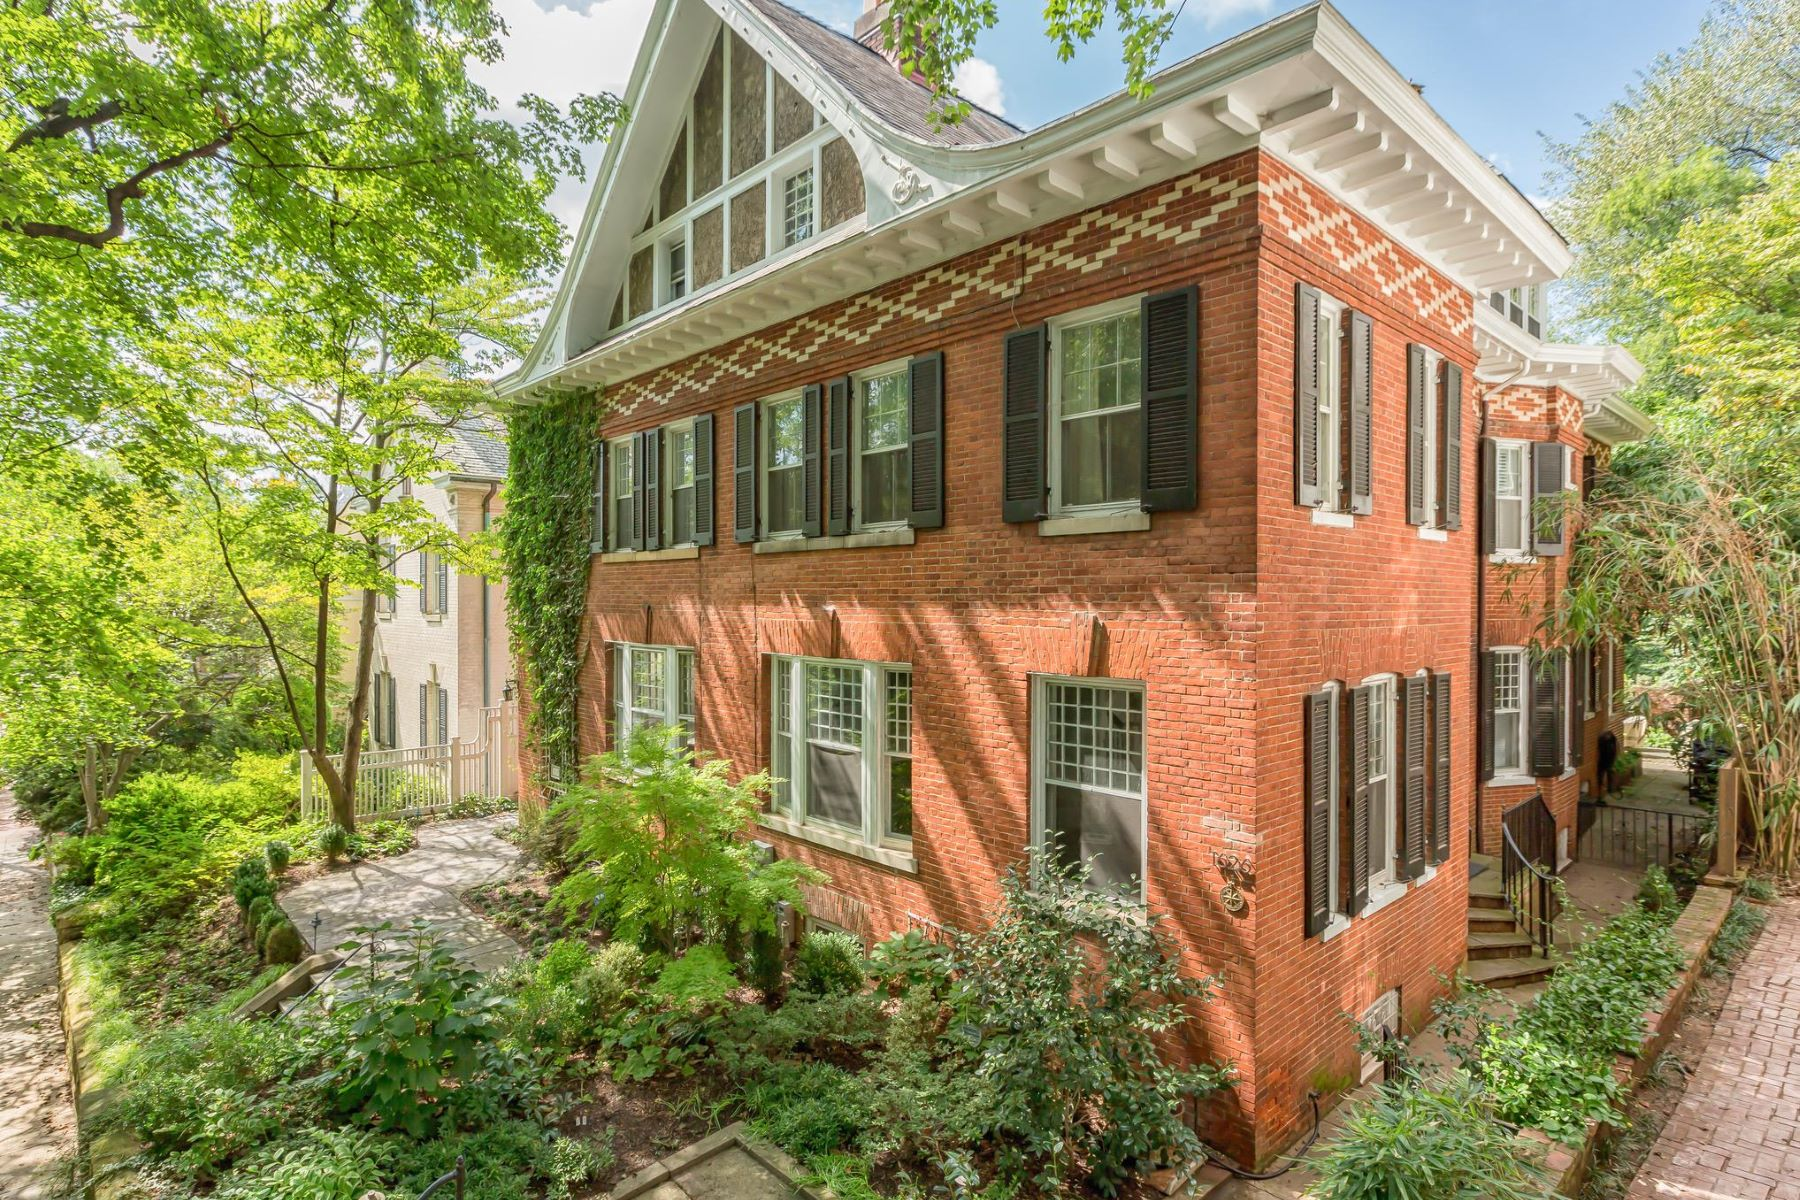 Single Family Home for Sale at 1626 29th St NW 1626 29th St NW Washington, District Of Columbia 20007 United States